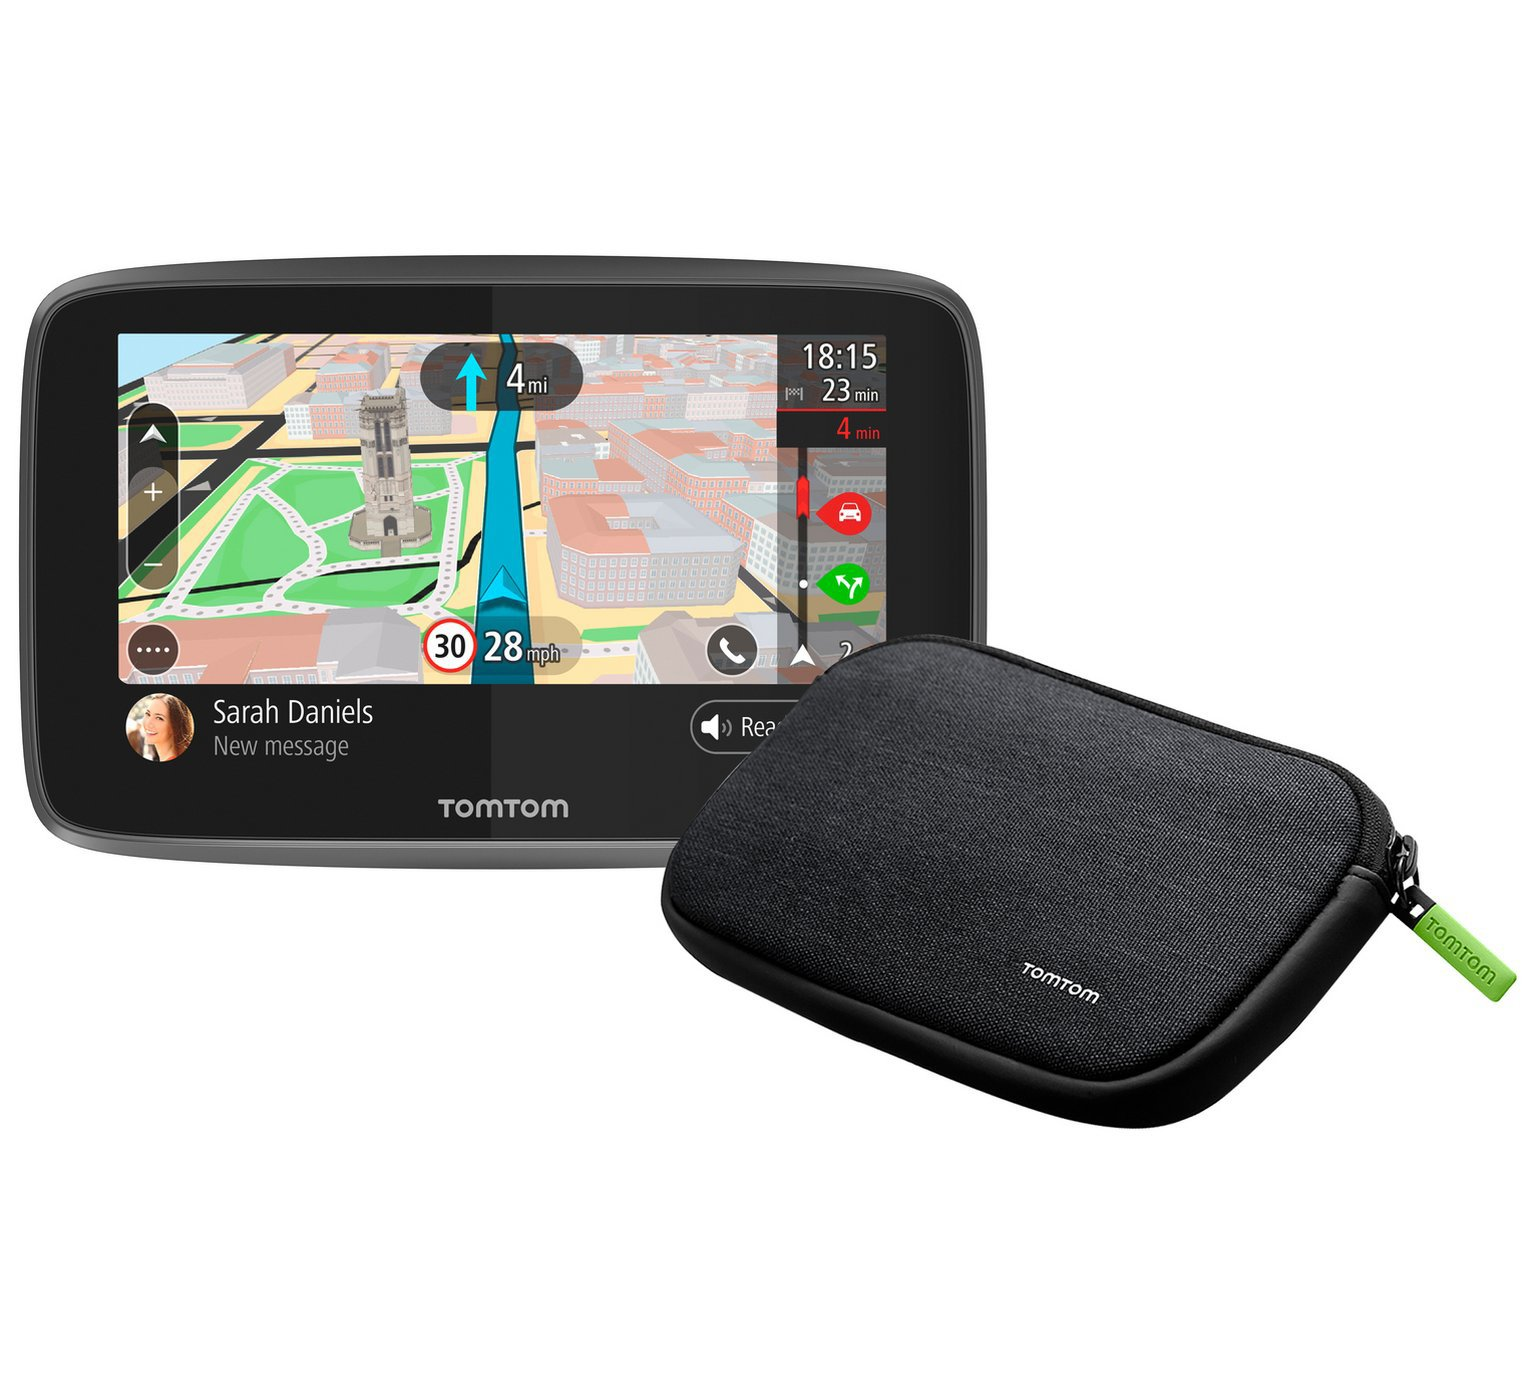 TomTom Launches HD Map RoadDNA For New States Business Wire - Us maps for tomtom